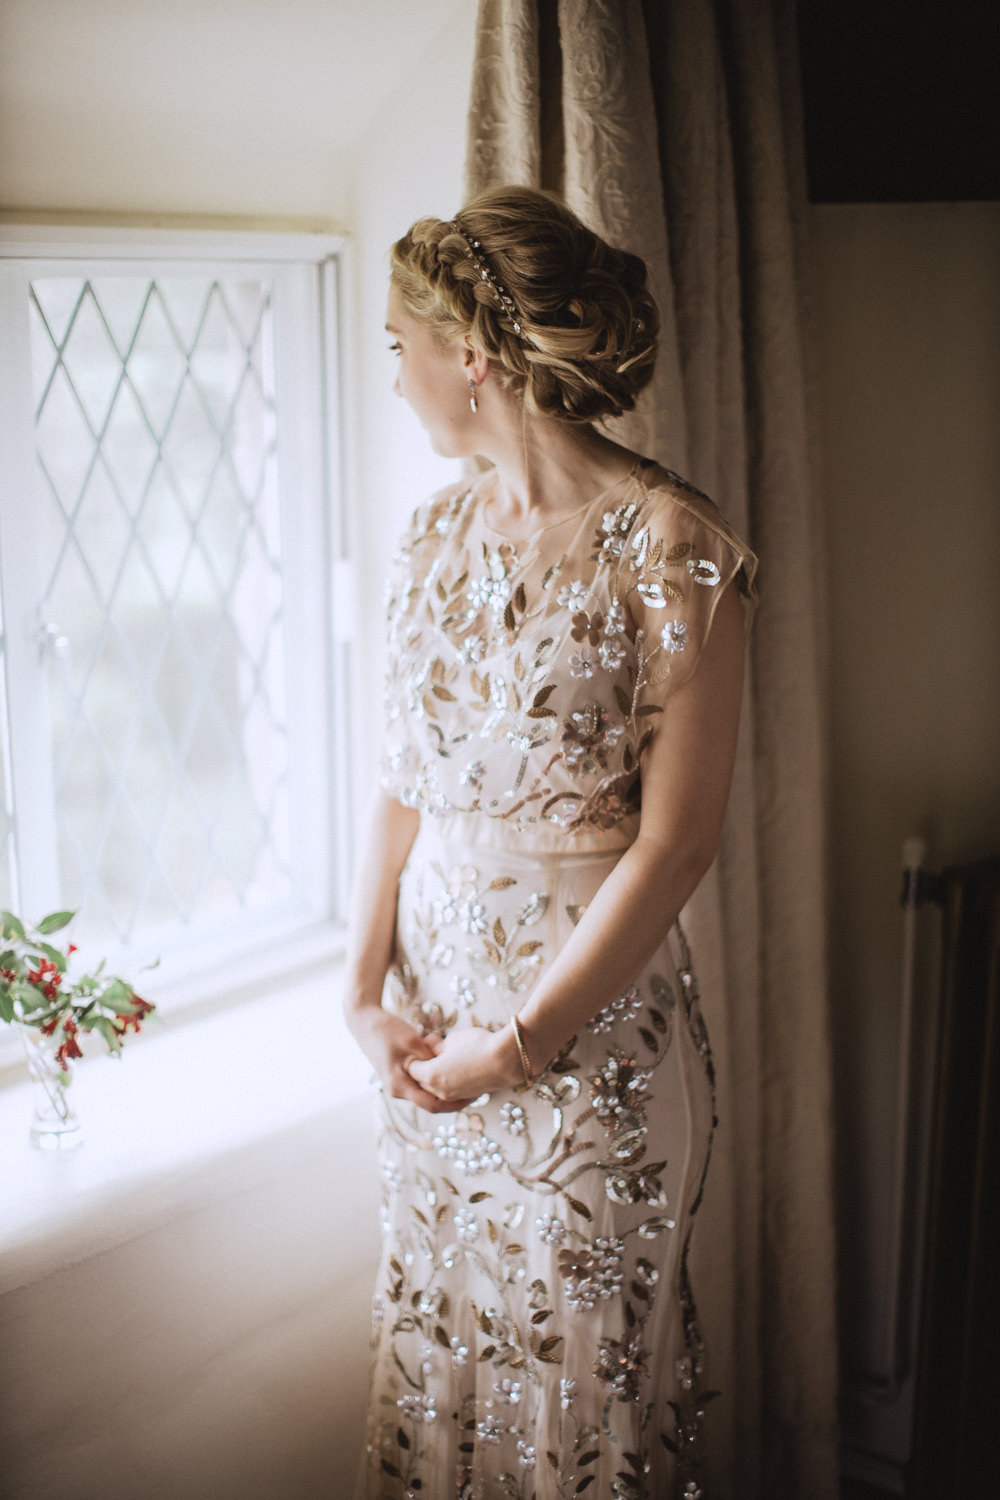 Dress Gown Bride Bridal BHLDN Sequin Beading Natural Marquee Wedding Fox & Bear Photography